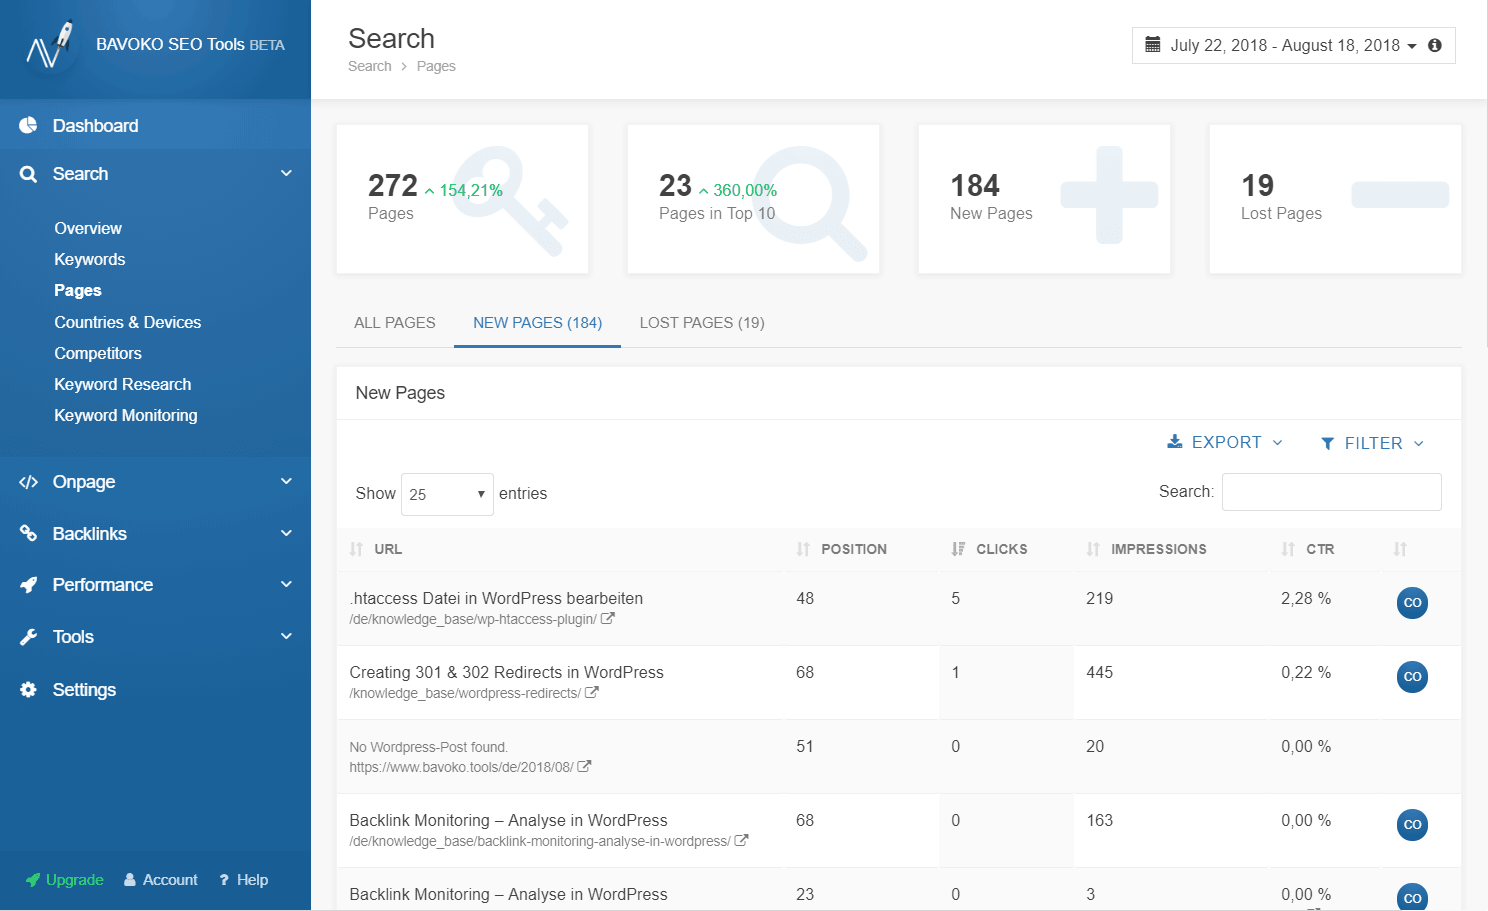 Analyze new pages